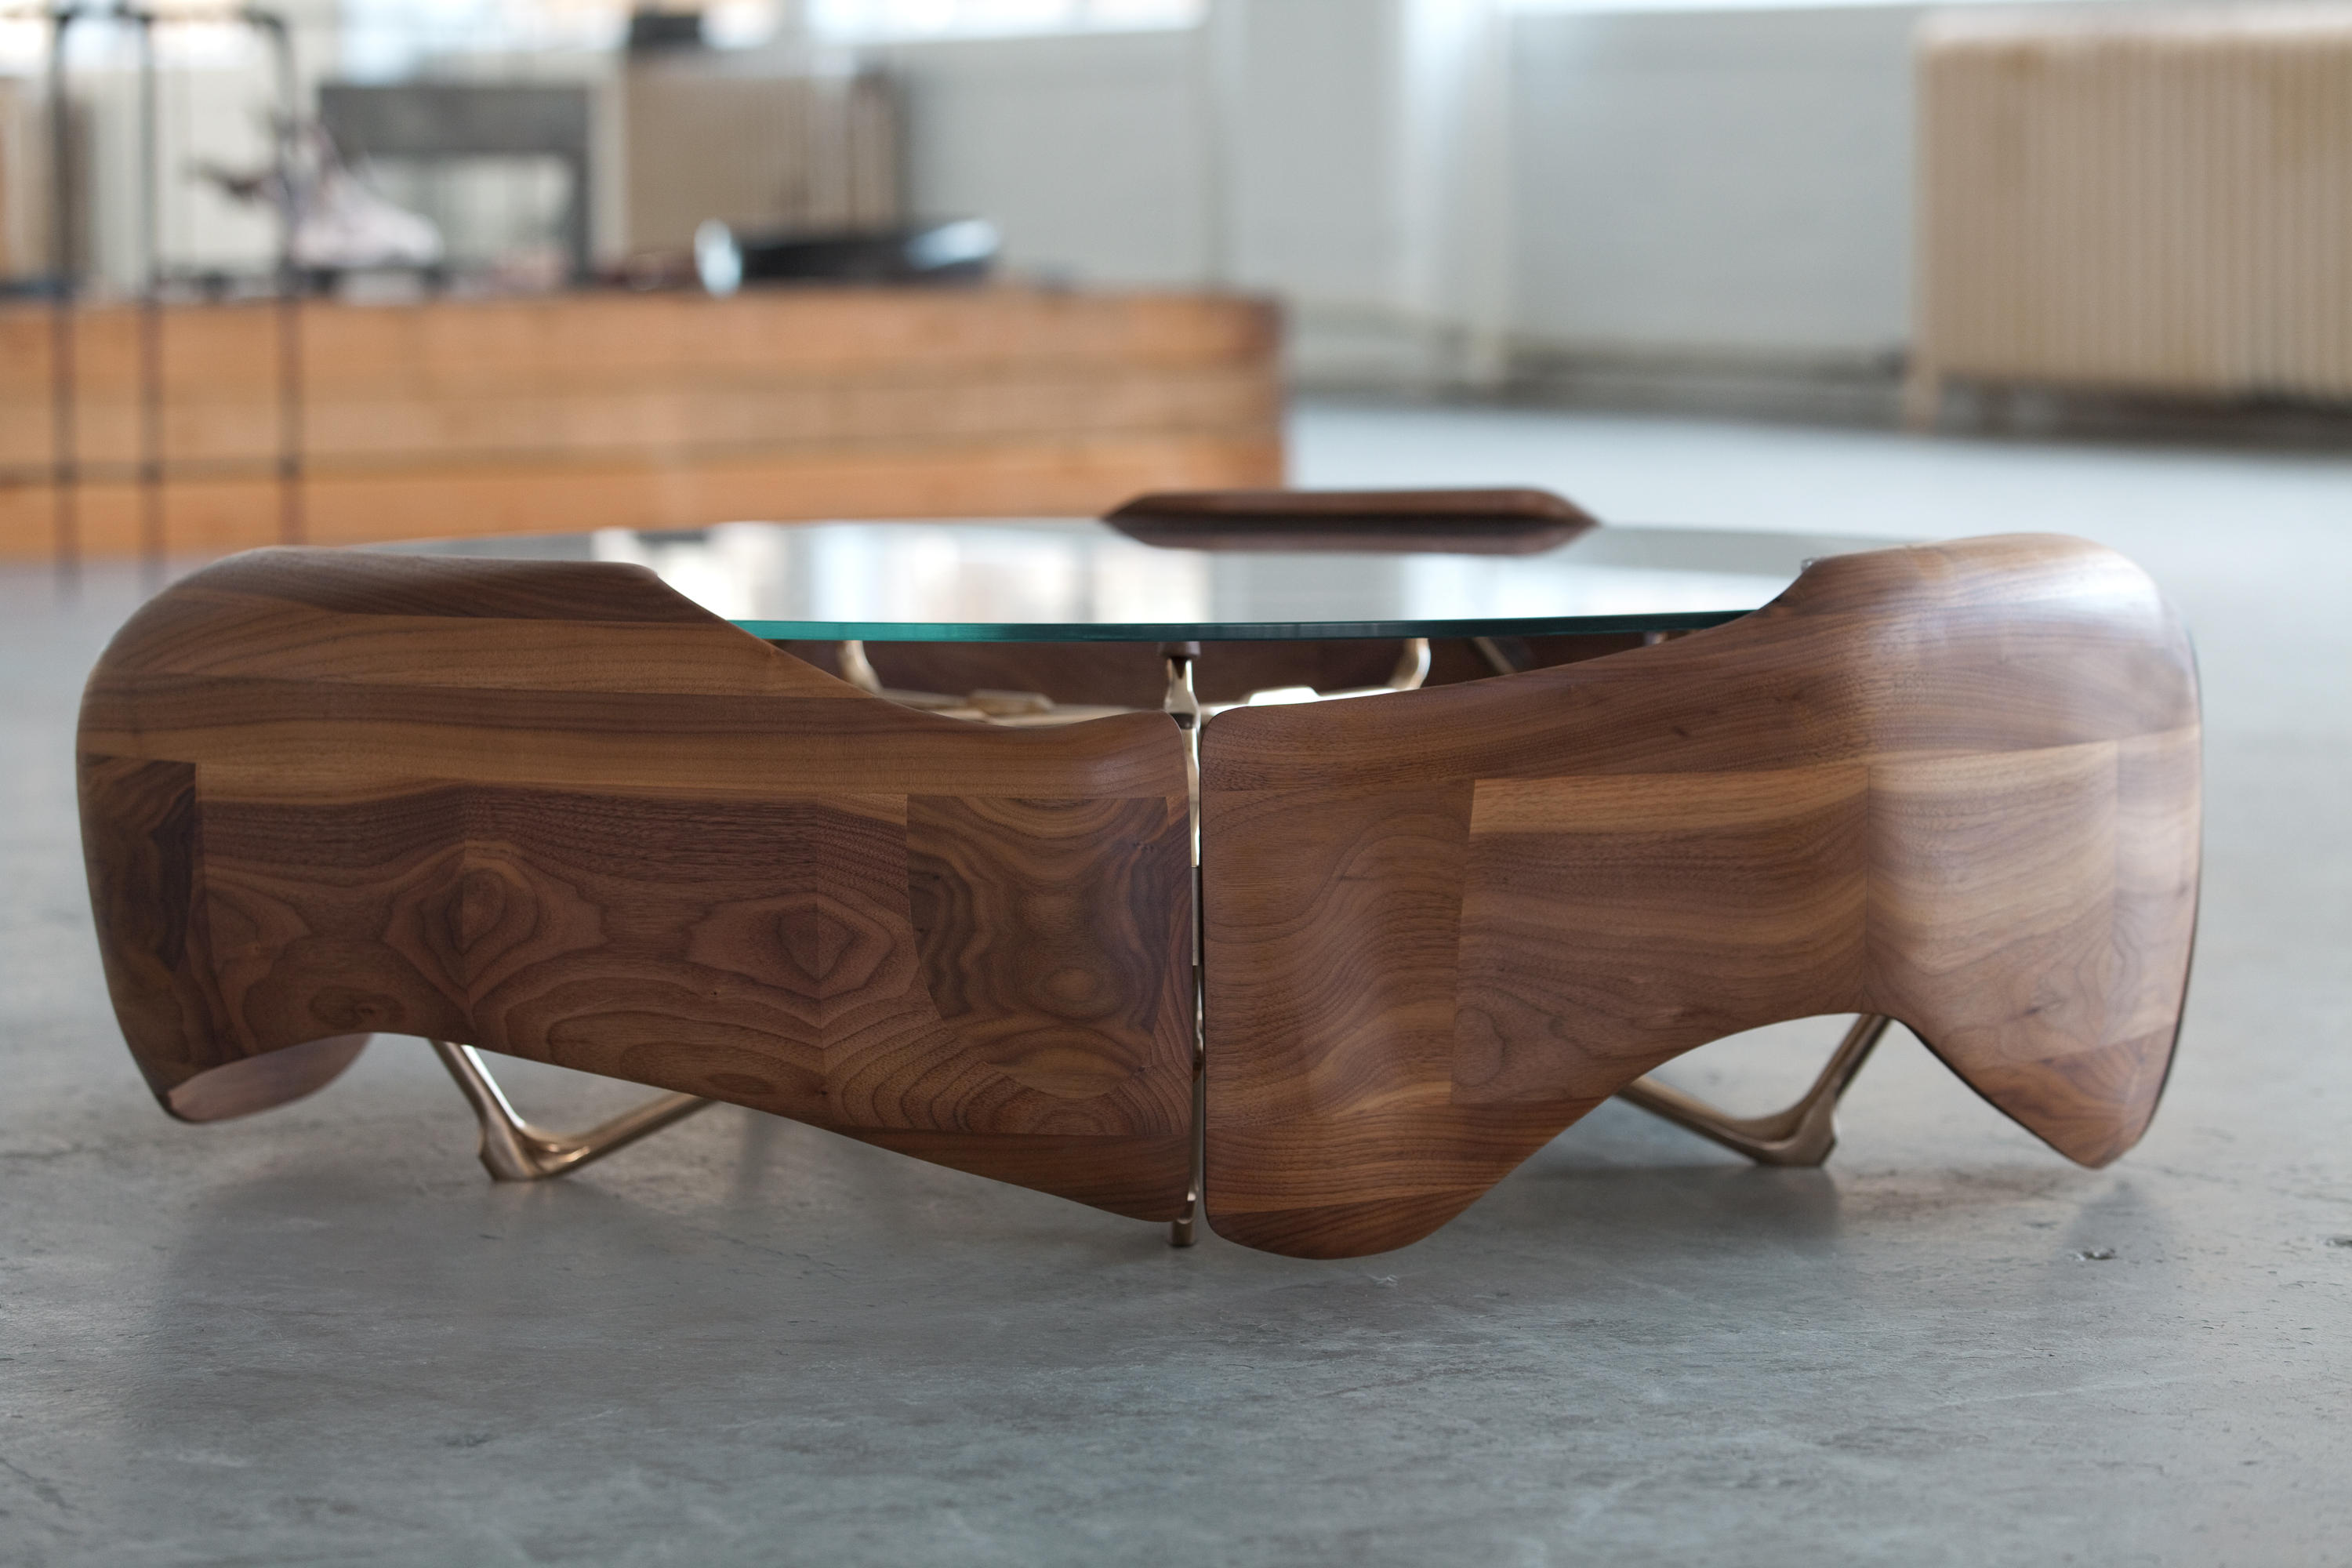 ... Vessel Coffee Table By CASTE | Coffee Tables ...